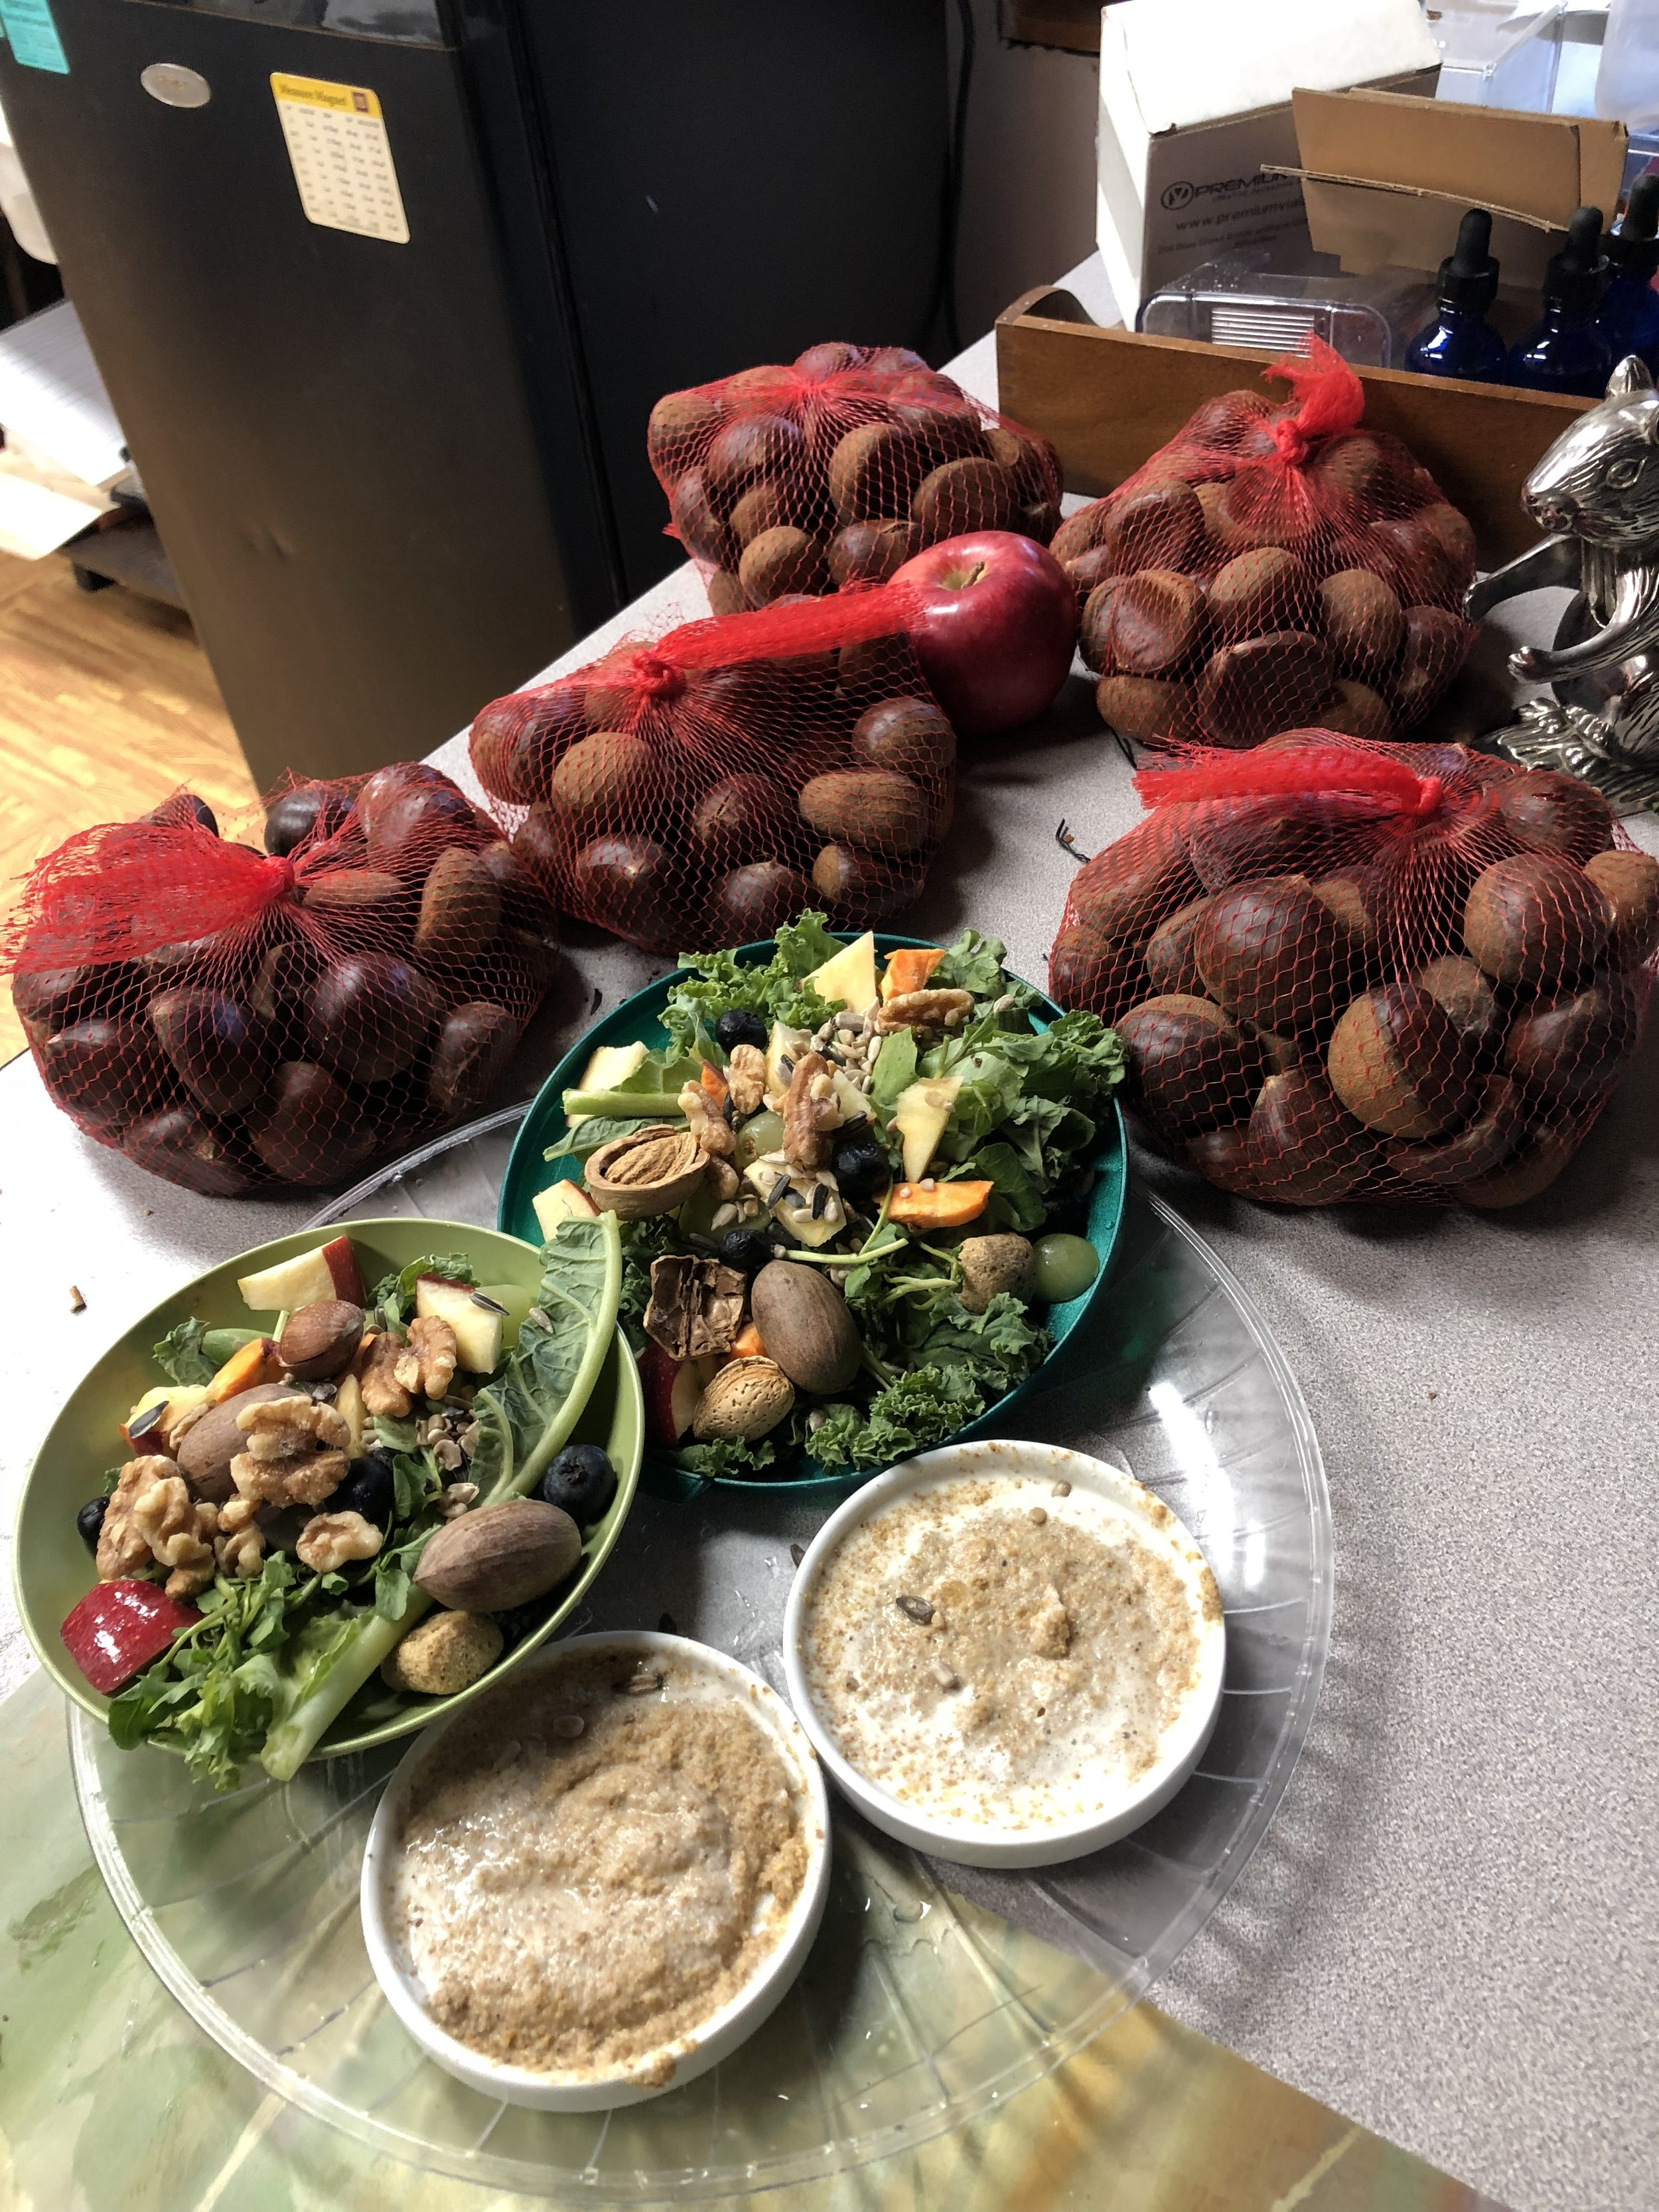 Breakfast for growing eastern grey squirrels. With a devastating acorn drought this year in the state, I needed to purchase chestnuts, walnuts and hazelnuts to teach squirrels how to crack shells, a necessity before release.